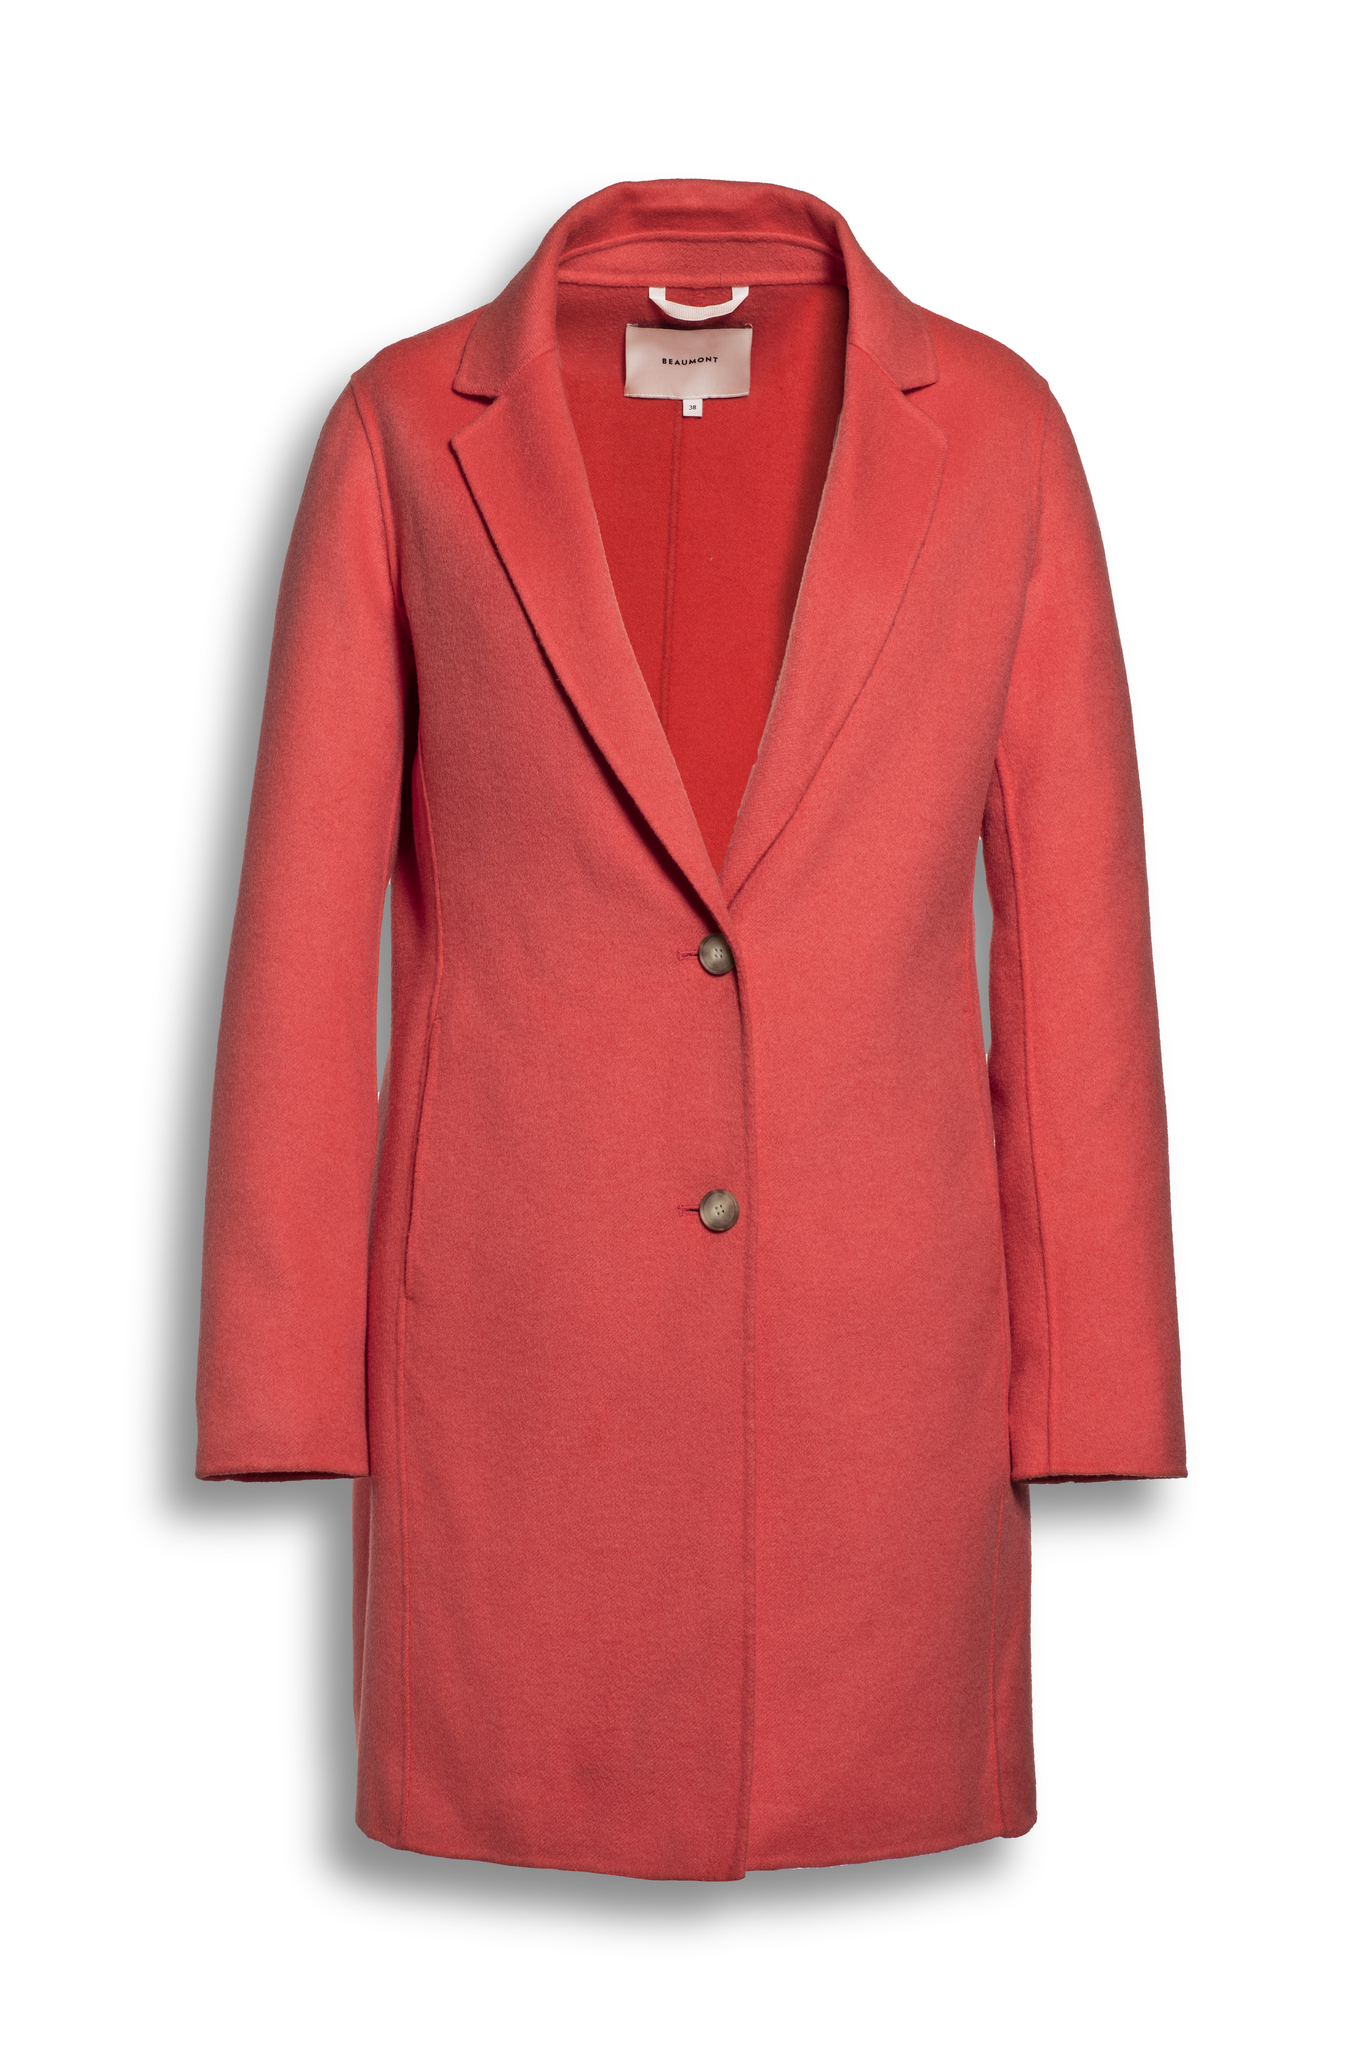 BEAUMONT Short Summer Wool Blazercoat Coral